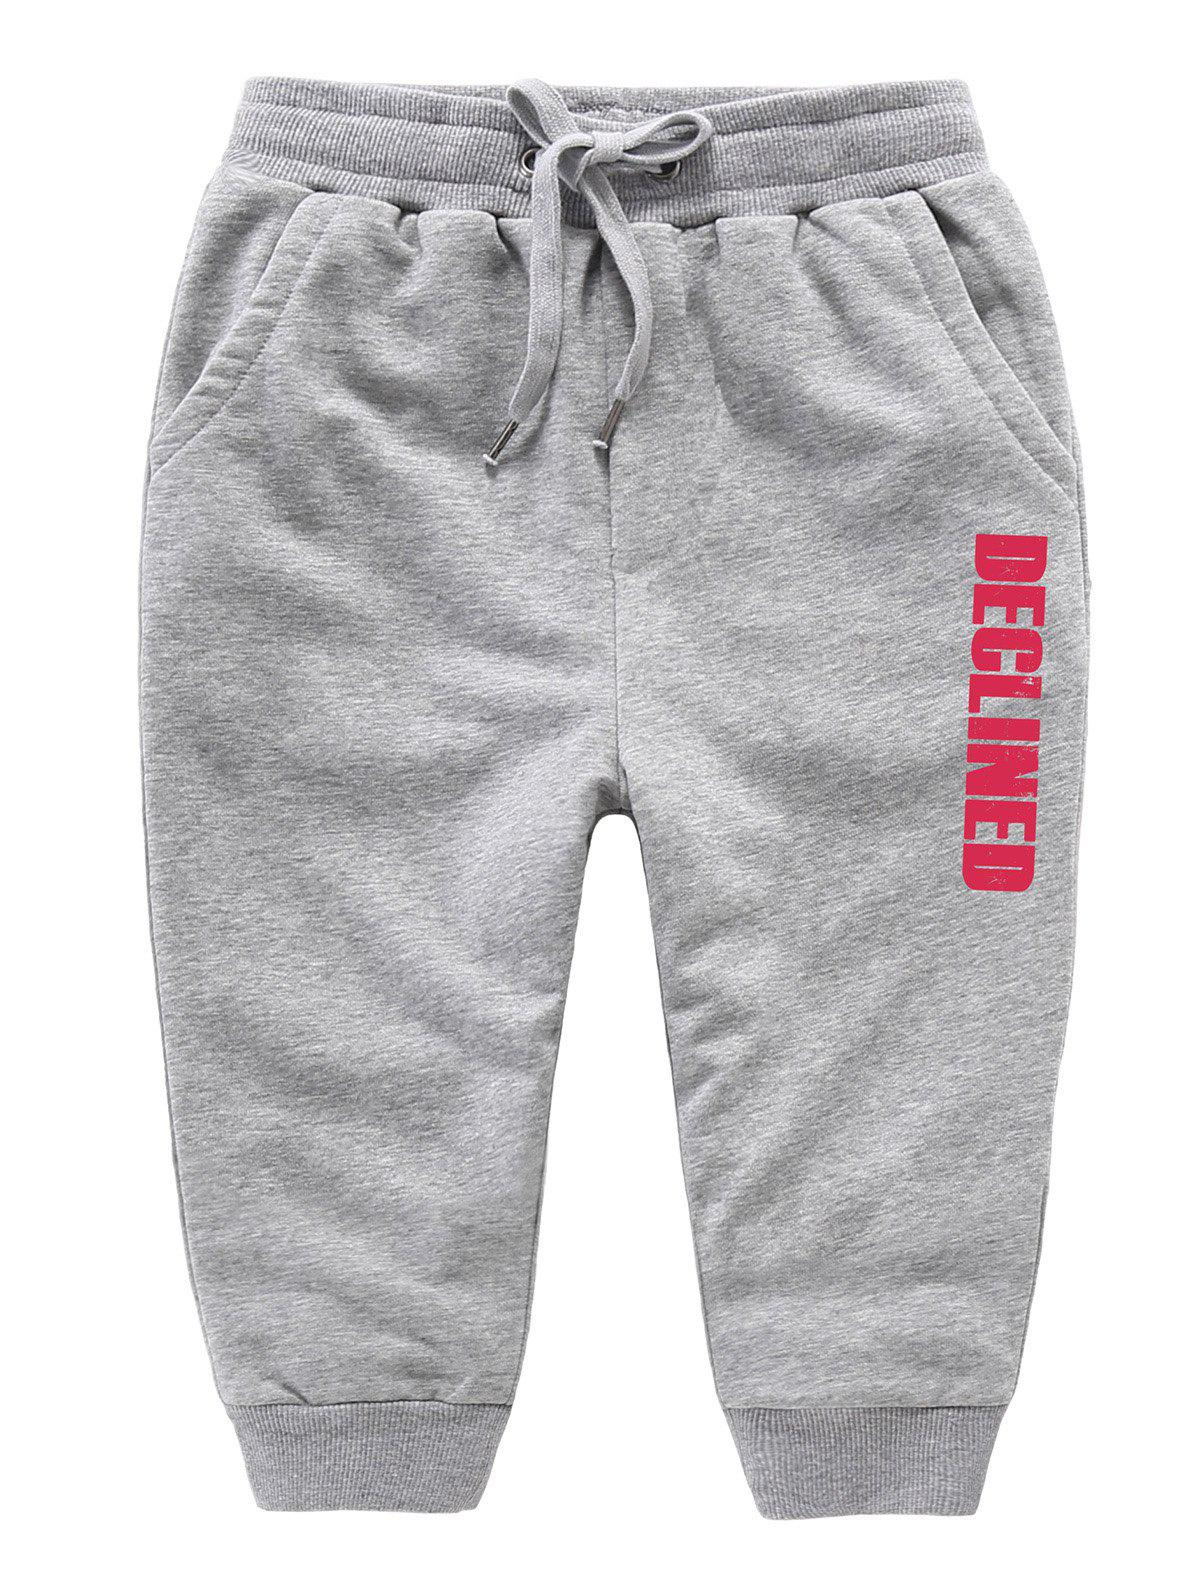 GRAY Casual Drawstring Letter Print Kids Sweatpants